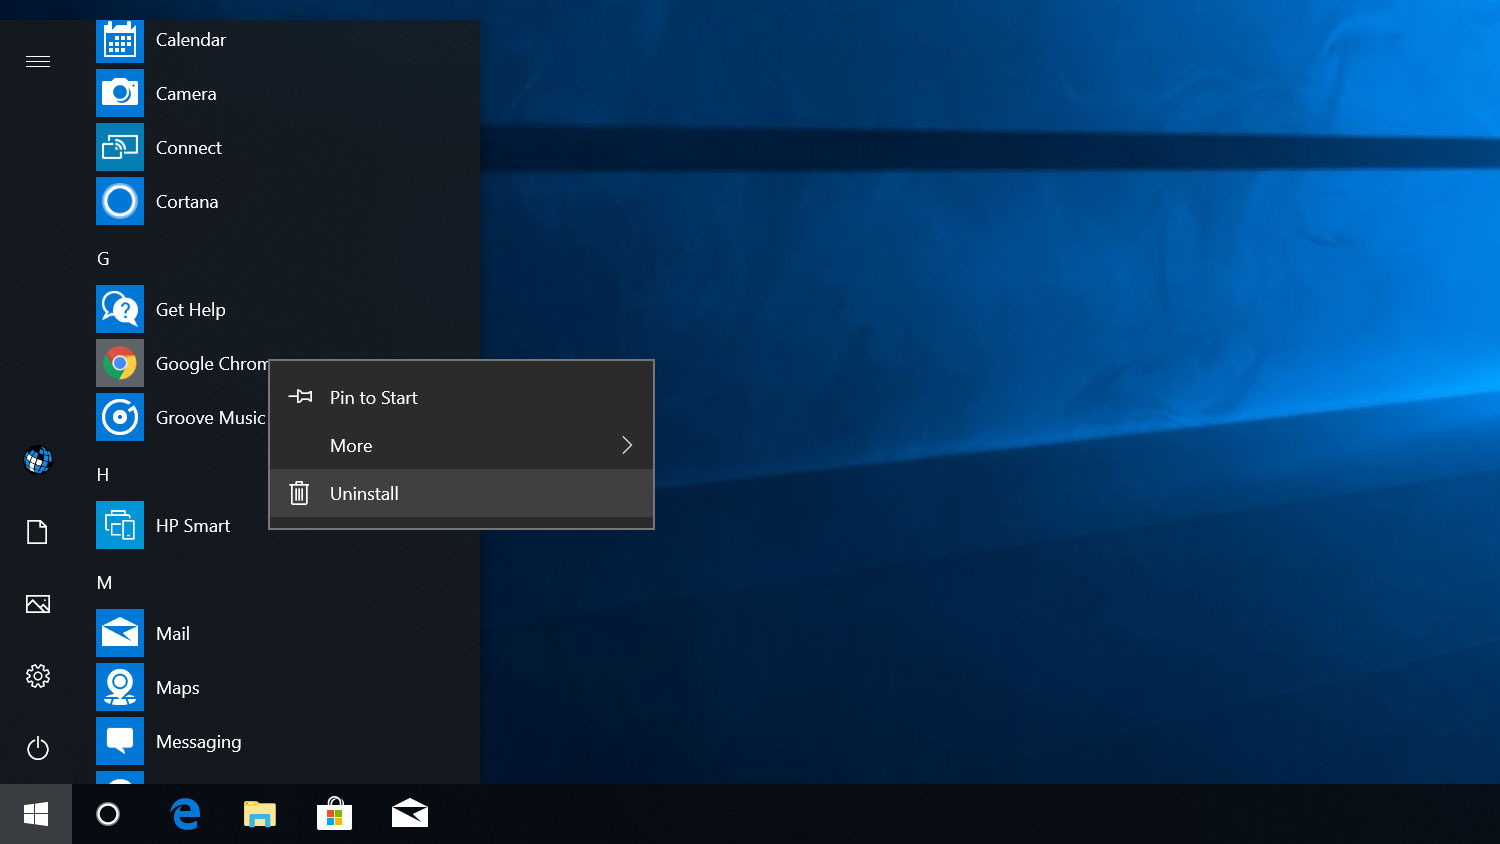 How to Uninstall Windows 10 Built-in Apps via PowerShell